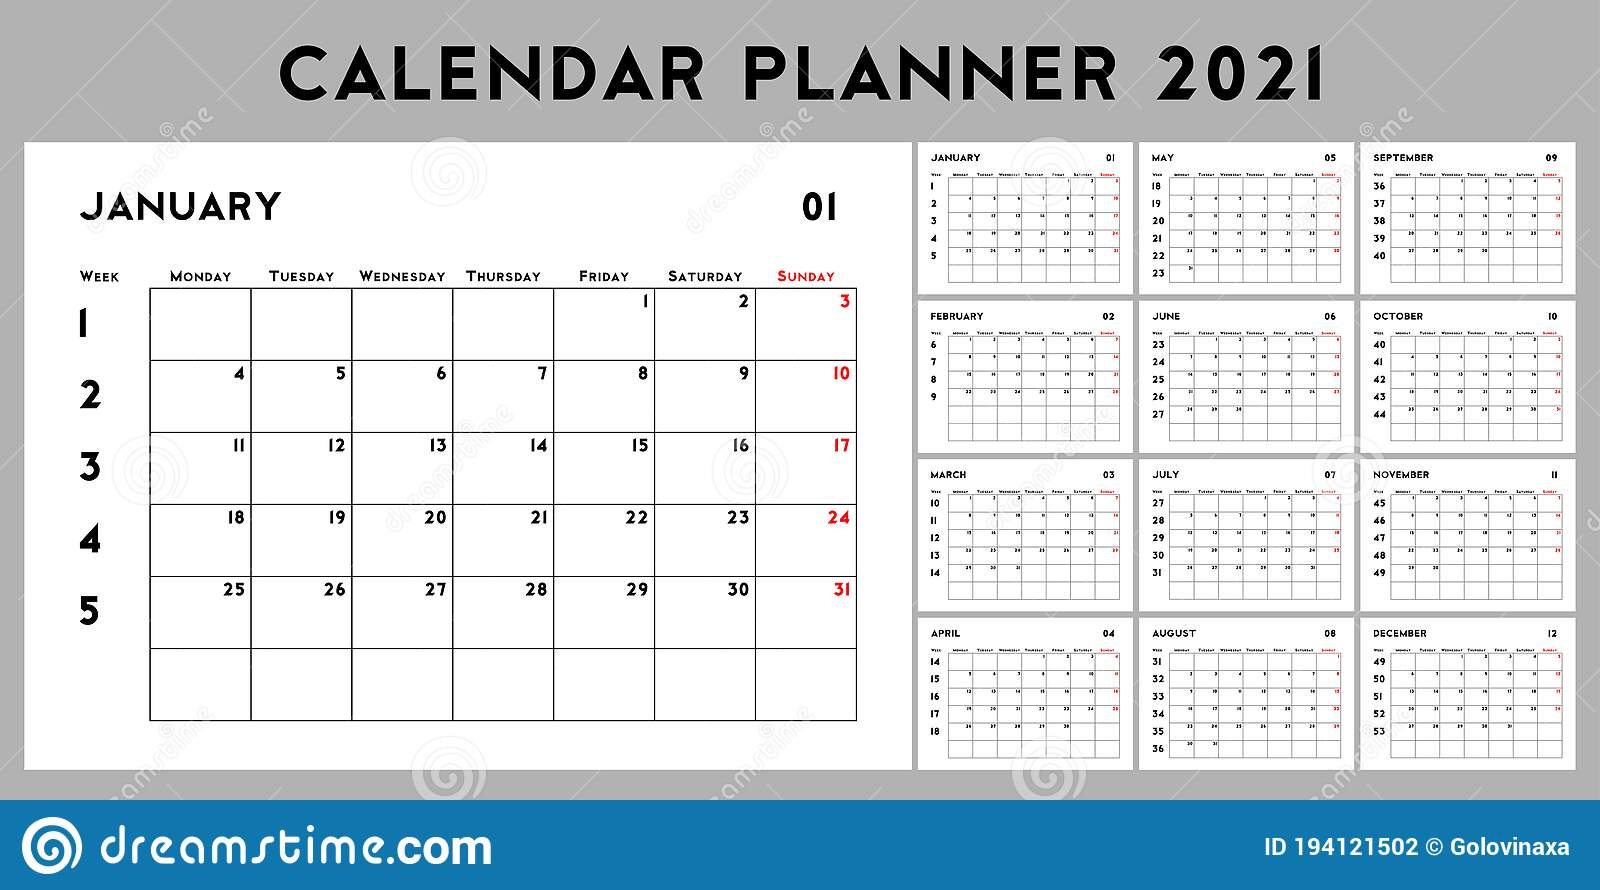 20 Calendar Planner with Week Numbers, Basic Design Template ...